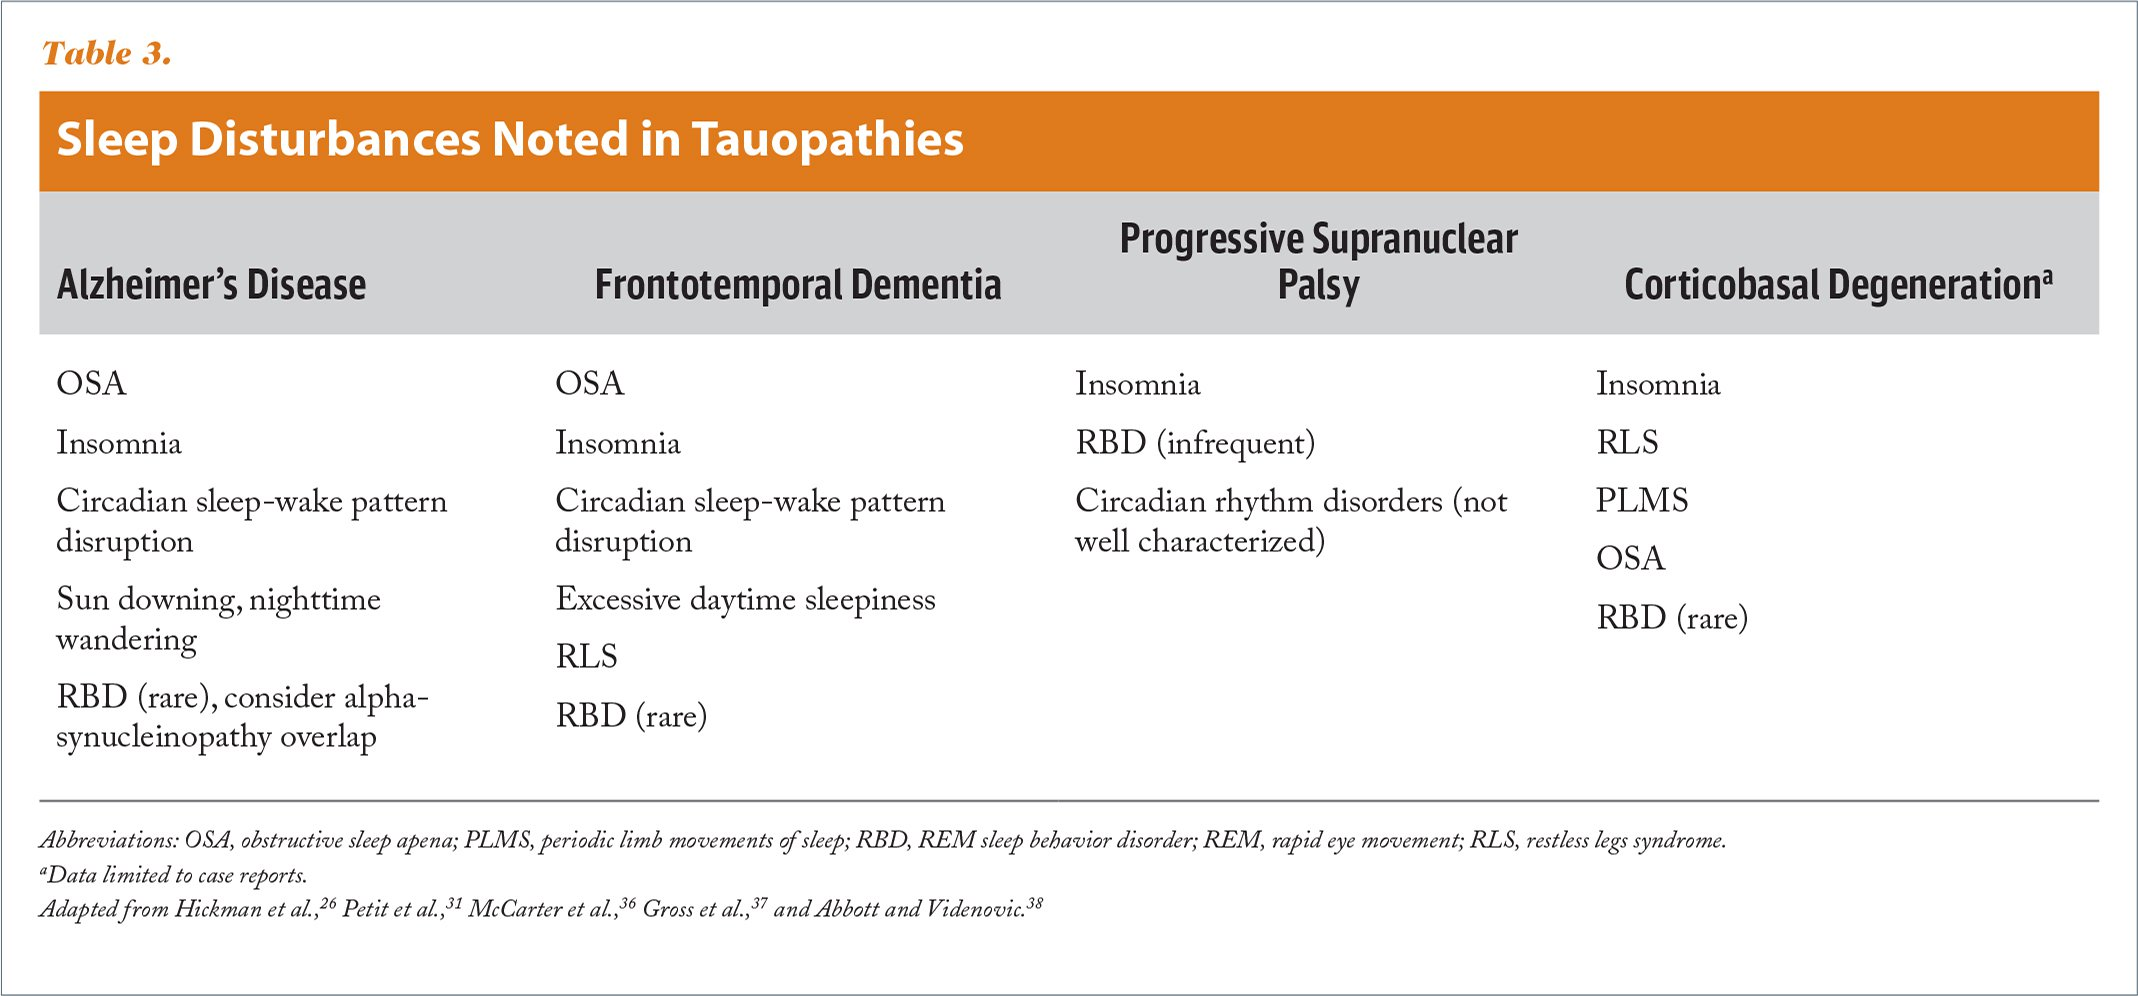 Sleep Disturbances Noted in Tauopathies